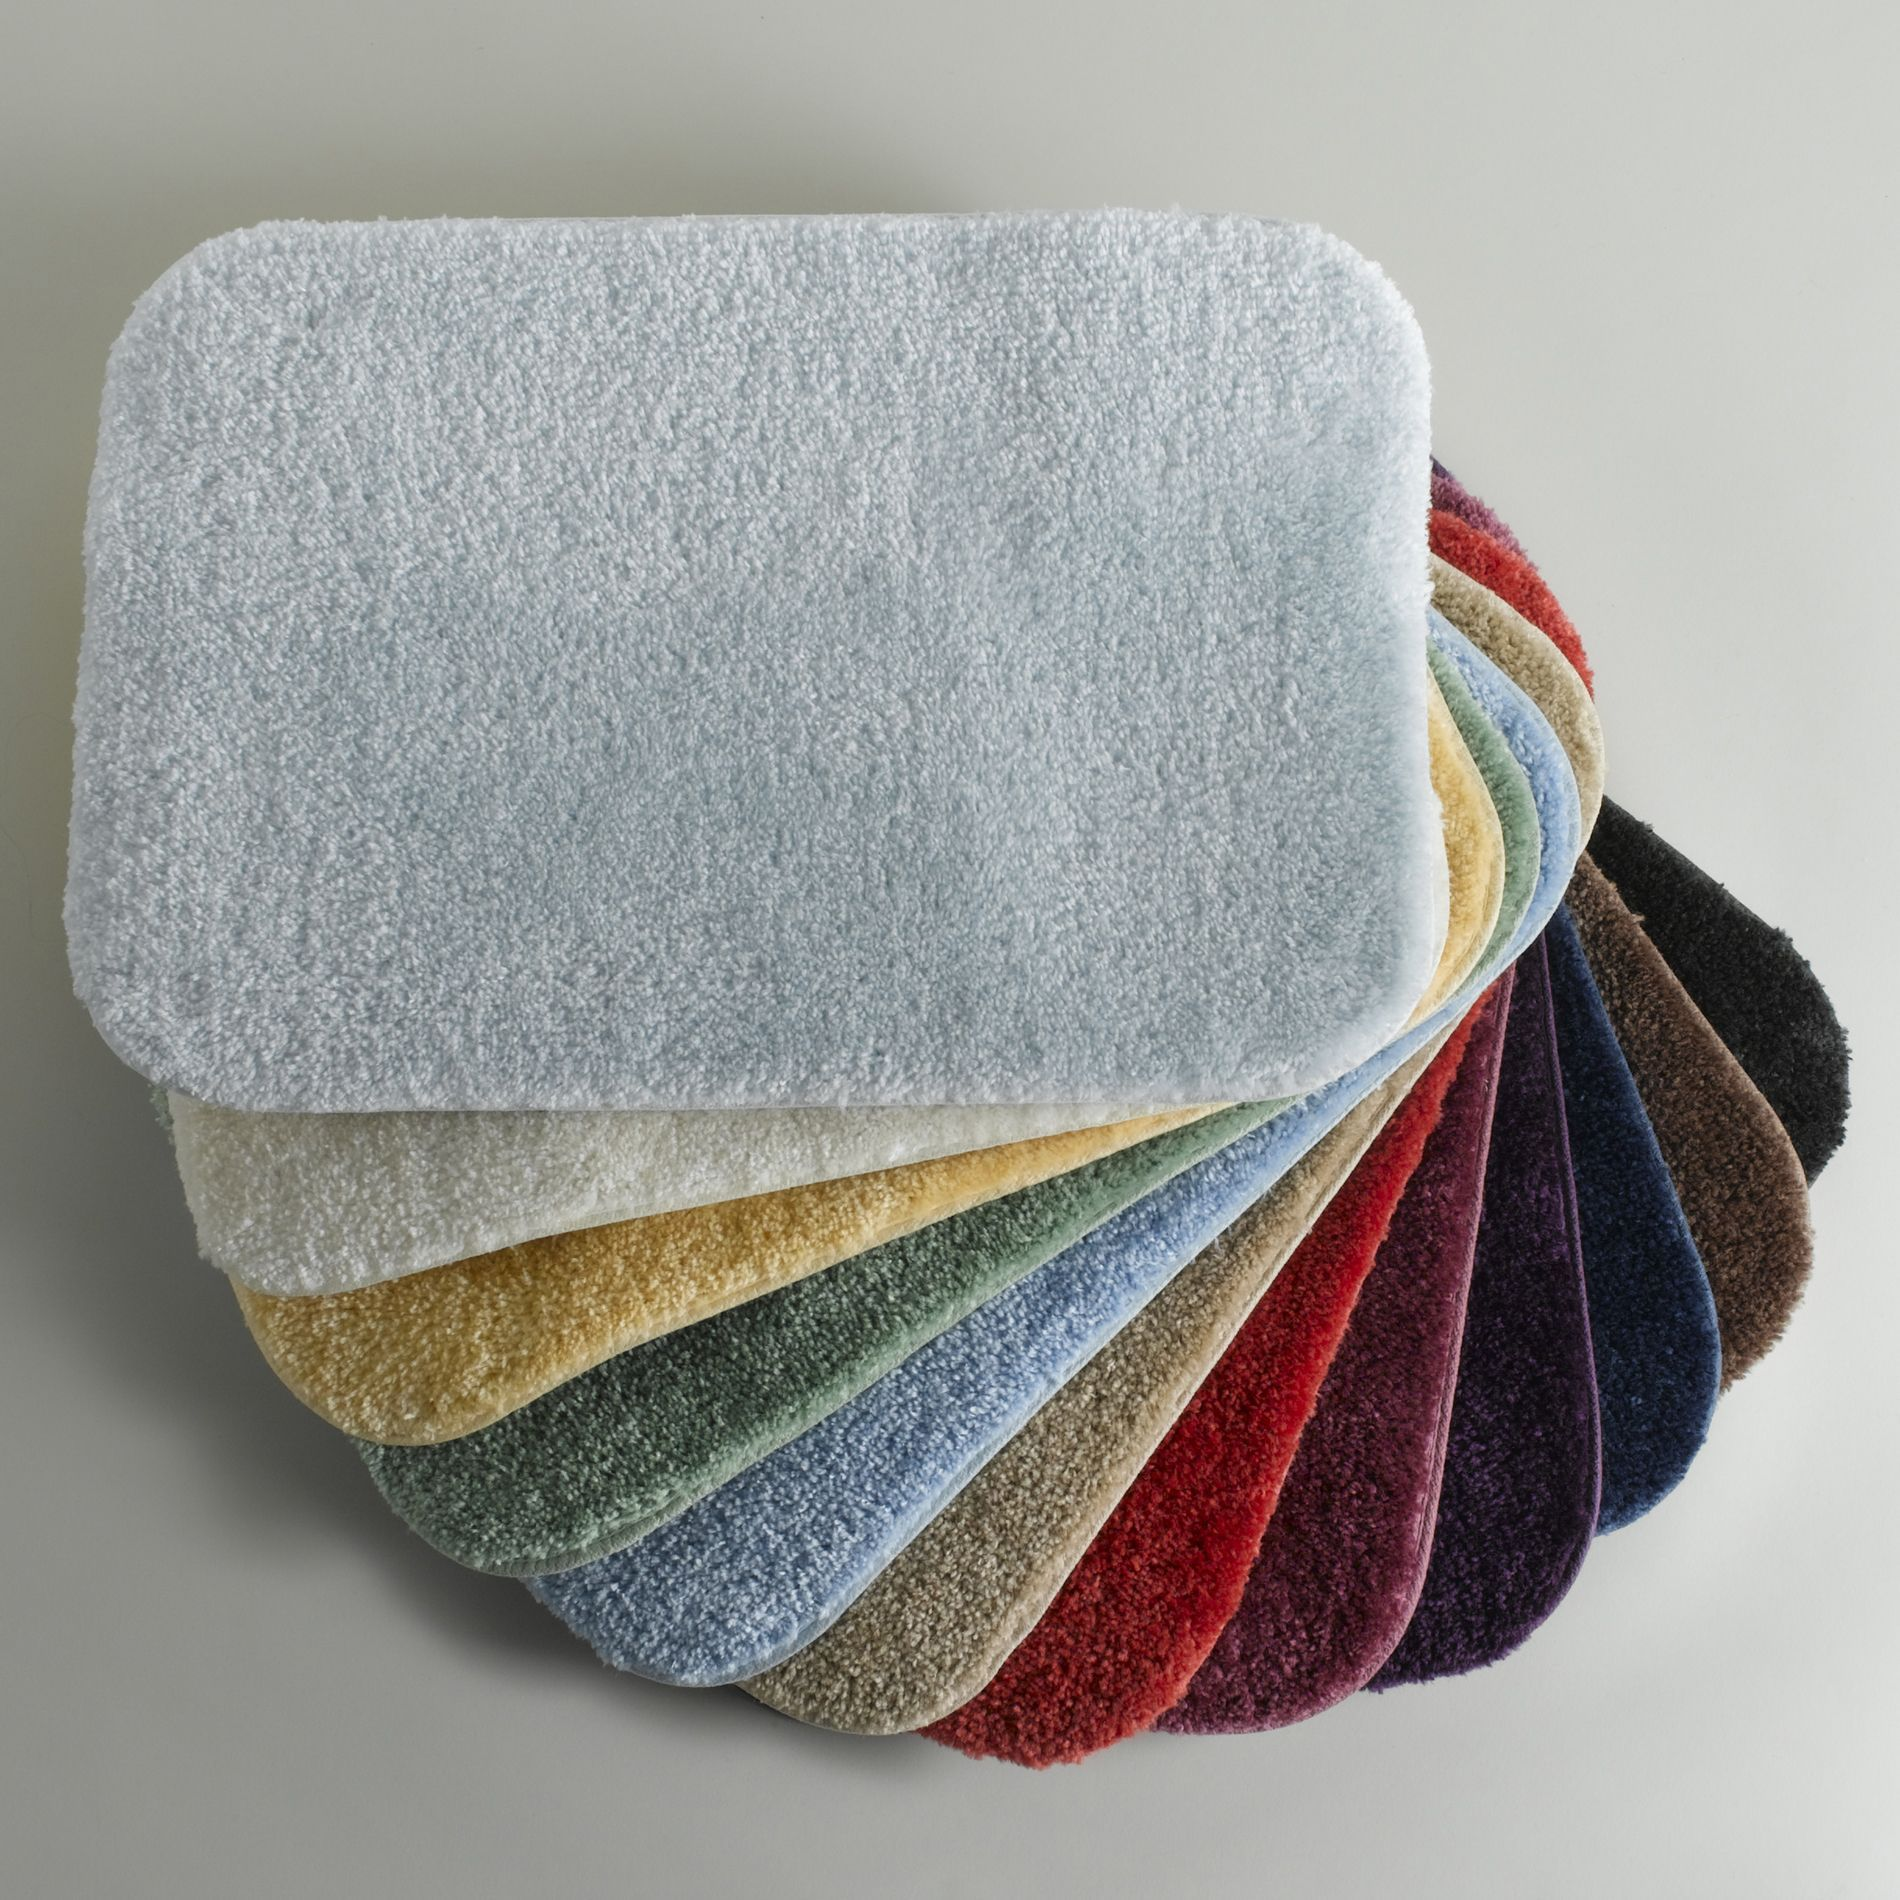 Bath Rugs With Rubber Backing Small To Medium Wish List - Round bath mats or rugs for bathroom decorating ideas